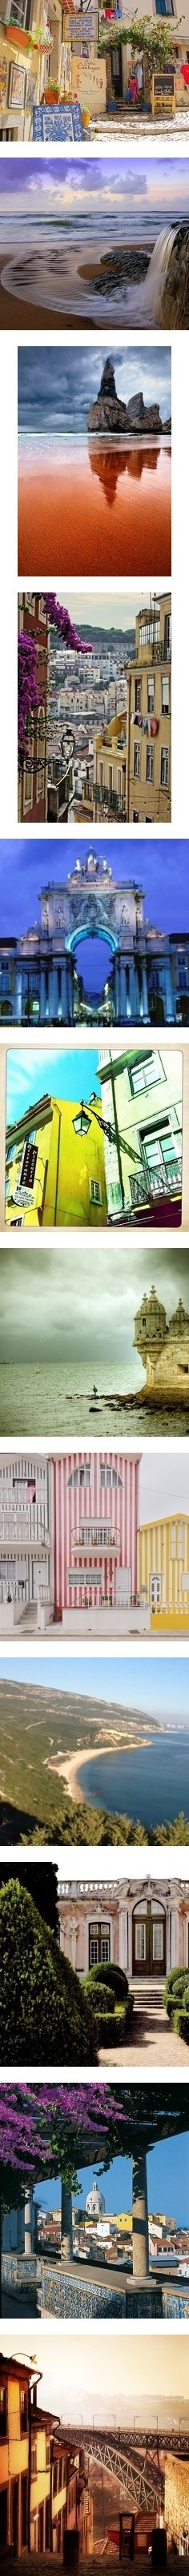 """""""Beautiful Pics, Beautiful Portugal - Part 2"""" by lumos-star ❤ liked on Polyvore"""